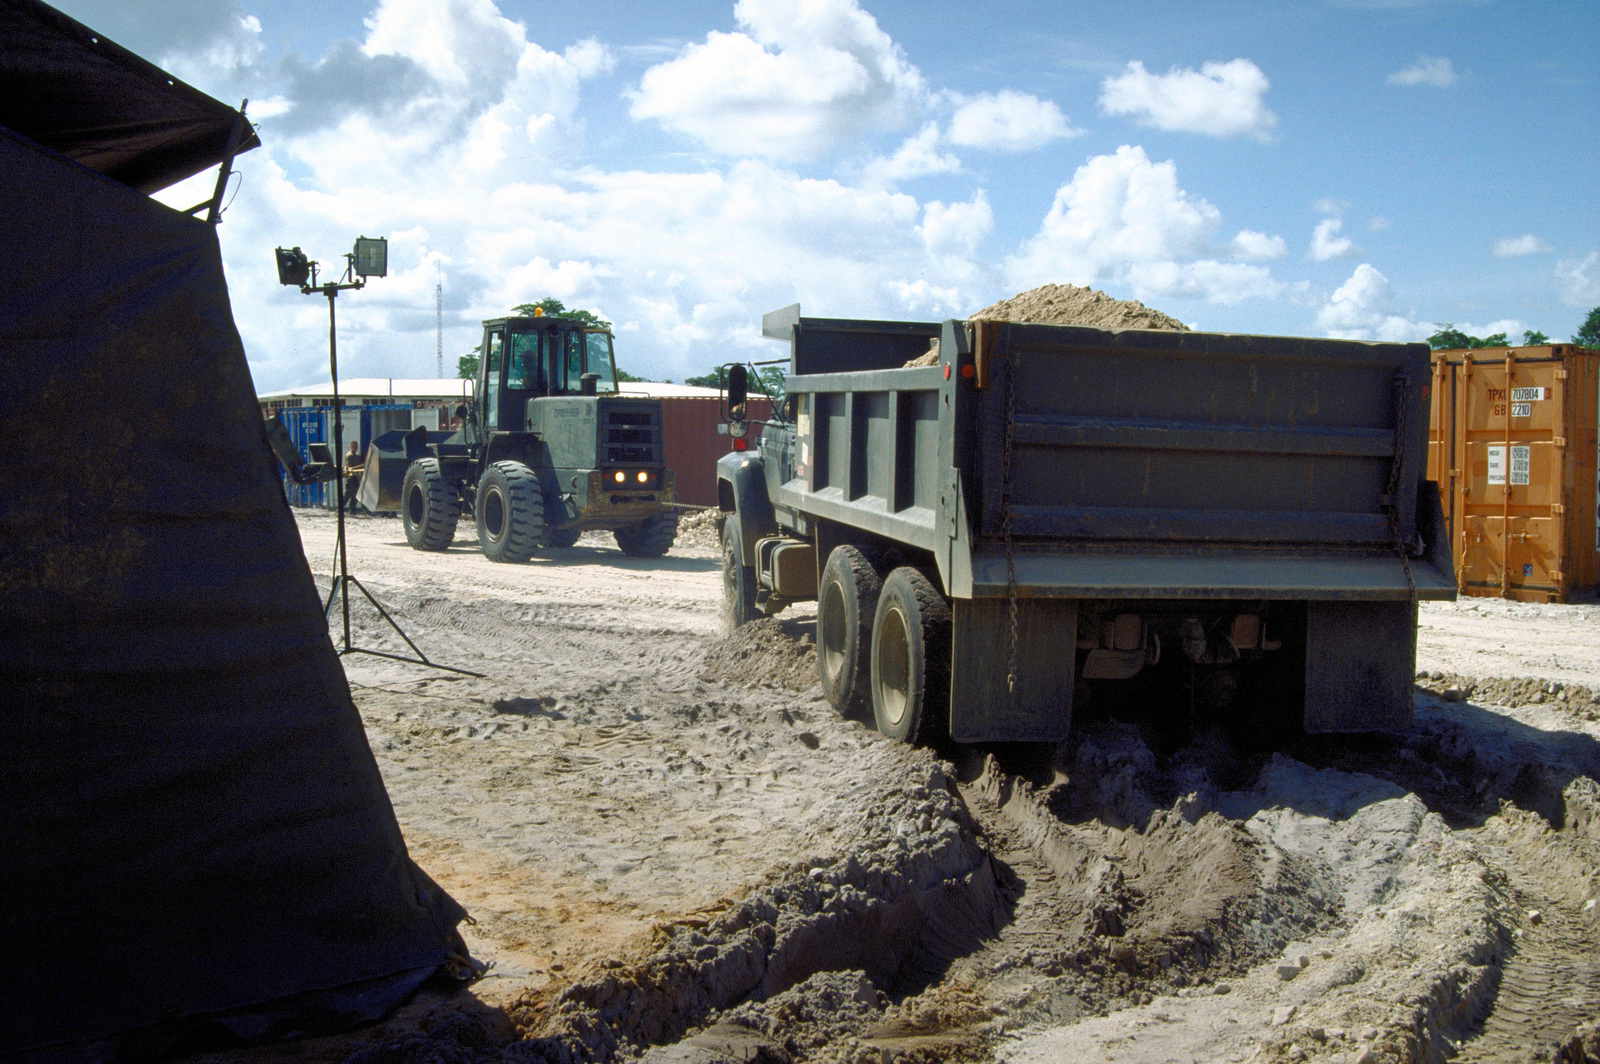 A front end loader helps tow one of the 820th Red Horse Squadron's large dump truck out of the wet sand in Camp Stephenson's tent city. The tent city will provide housing for the Combined Task Force Falcon participants in New Horizon '97, the first combined humanitarian and civic assistance exercise conducted between the United States and Guyana. Military personnel from the Air Force, Air Force Reserve & National Guard, Army, Army National Guard and Marine Corps participated in the exercise which included engineering and medical readiness training